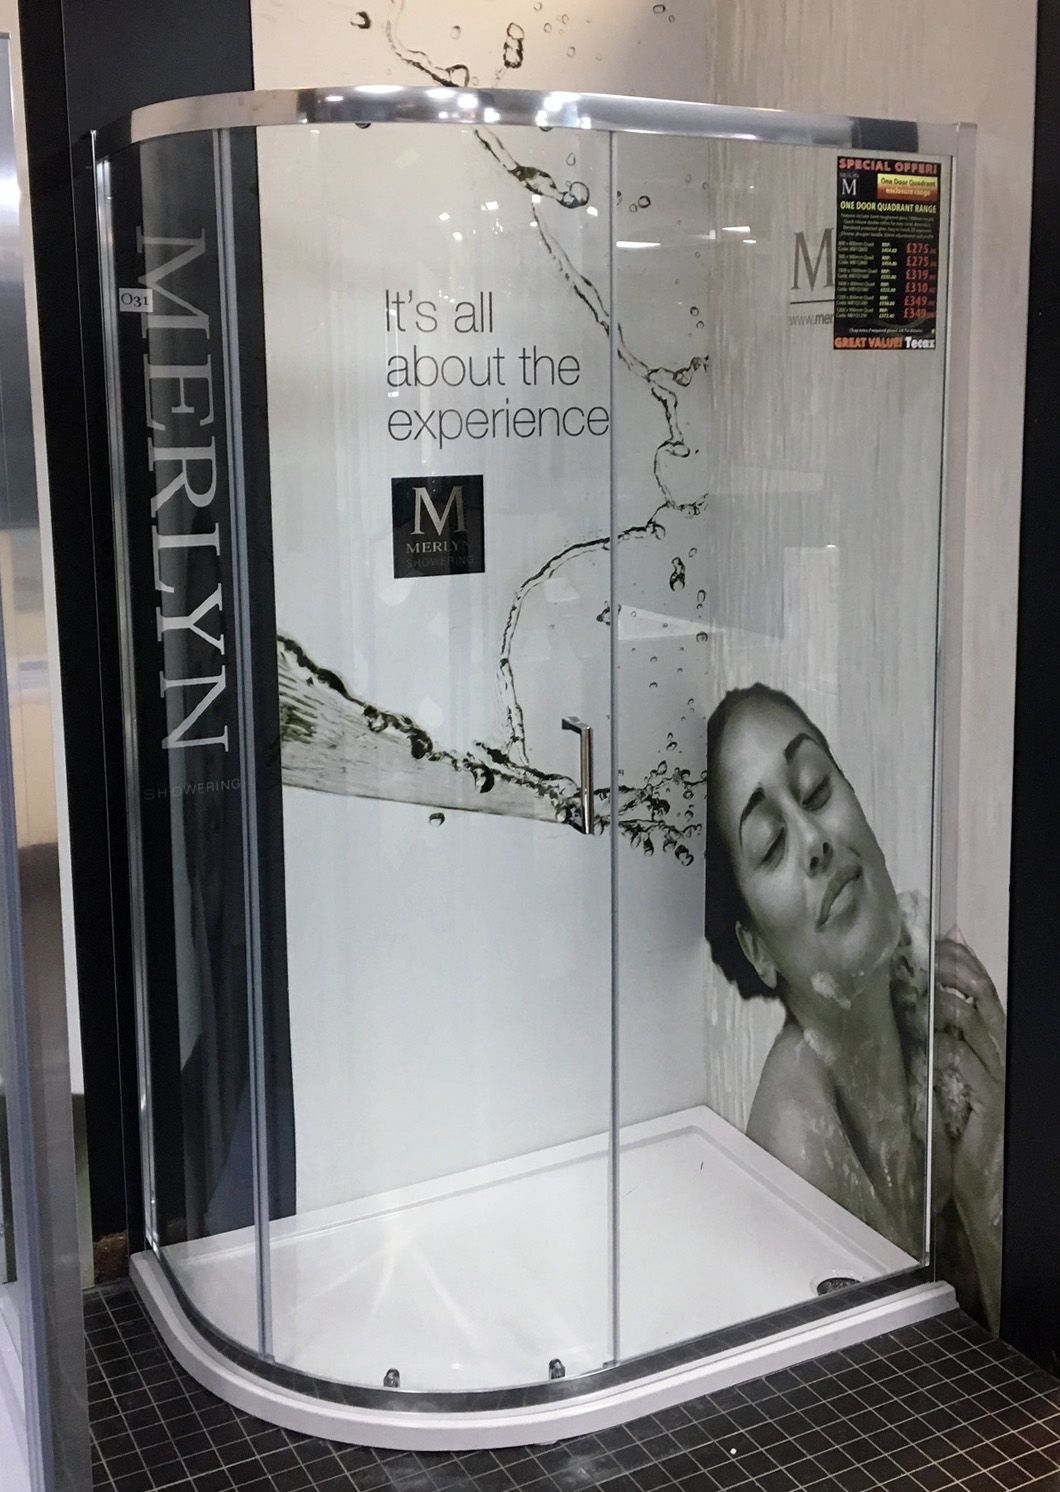 Our new Merlyn Mbox displays look great - for high quality showers ...